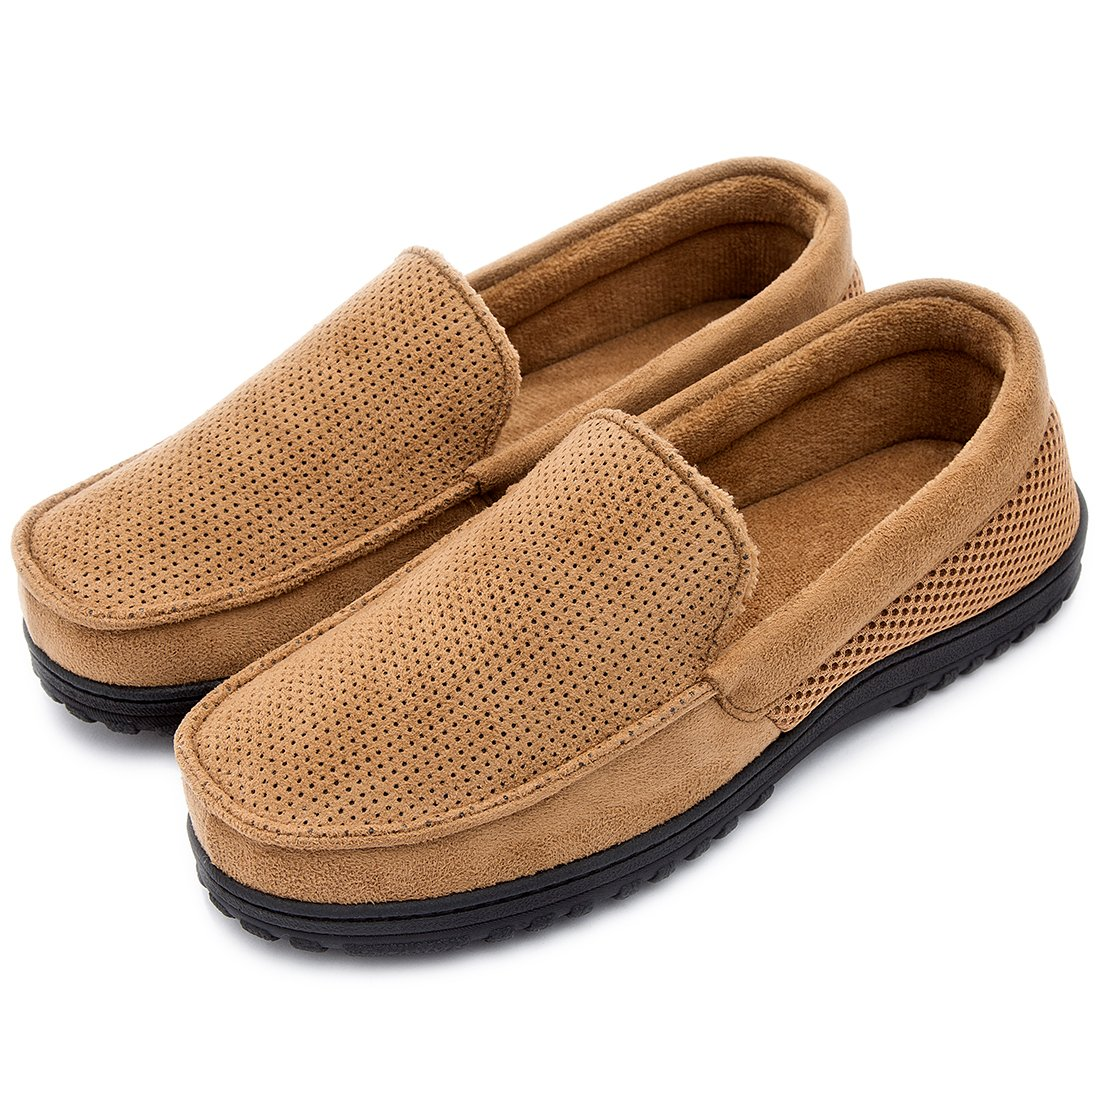 ULTRAIDEAS Men's Fleece Lined Slippers Breathable Micro Suede Memory Foam Moccasins Shoes